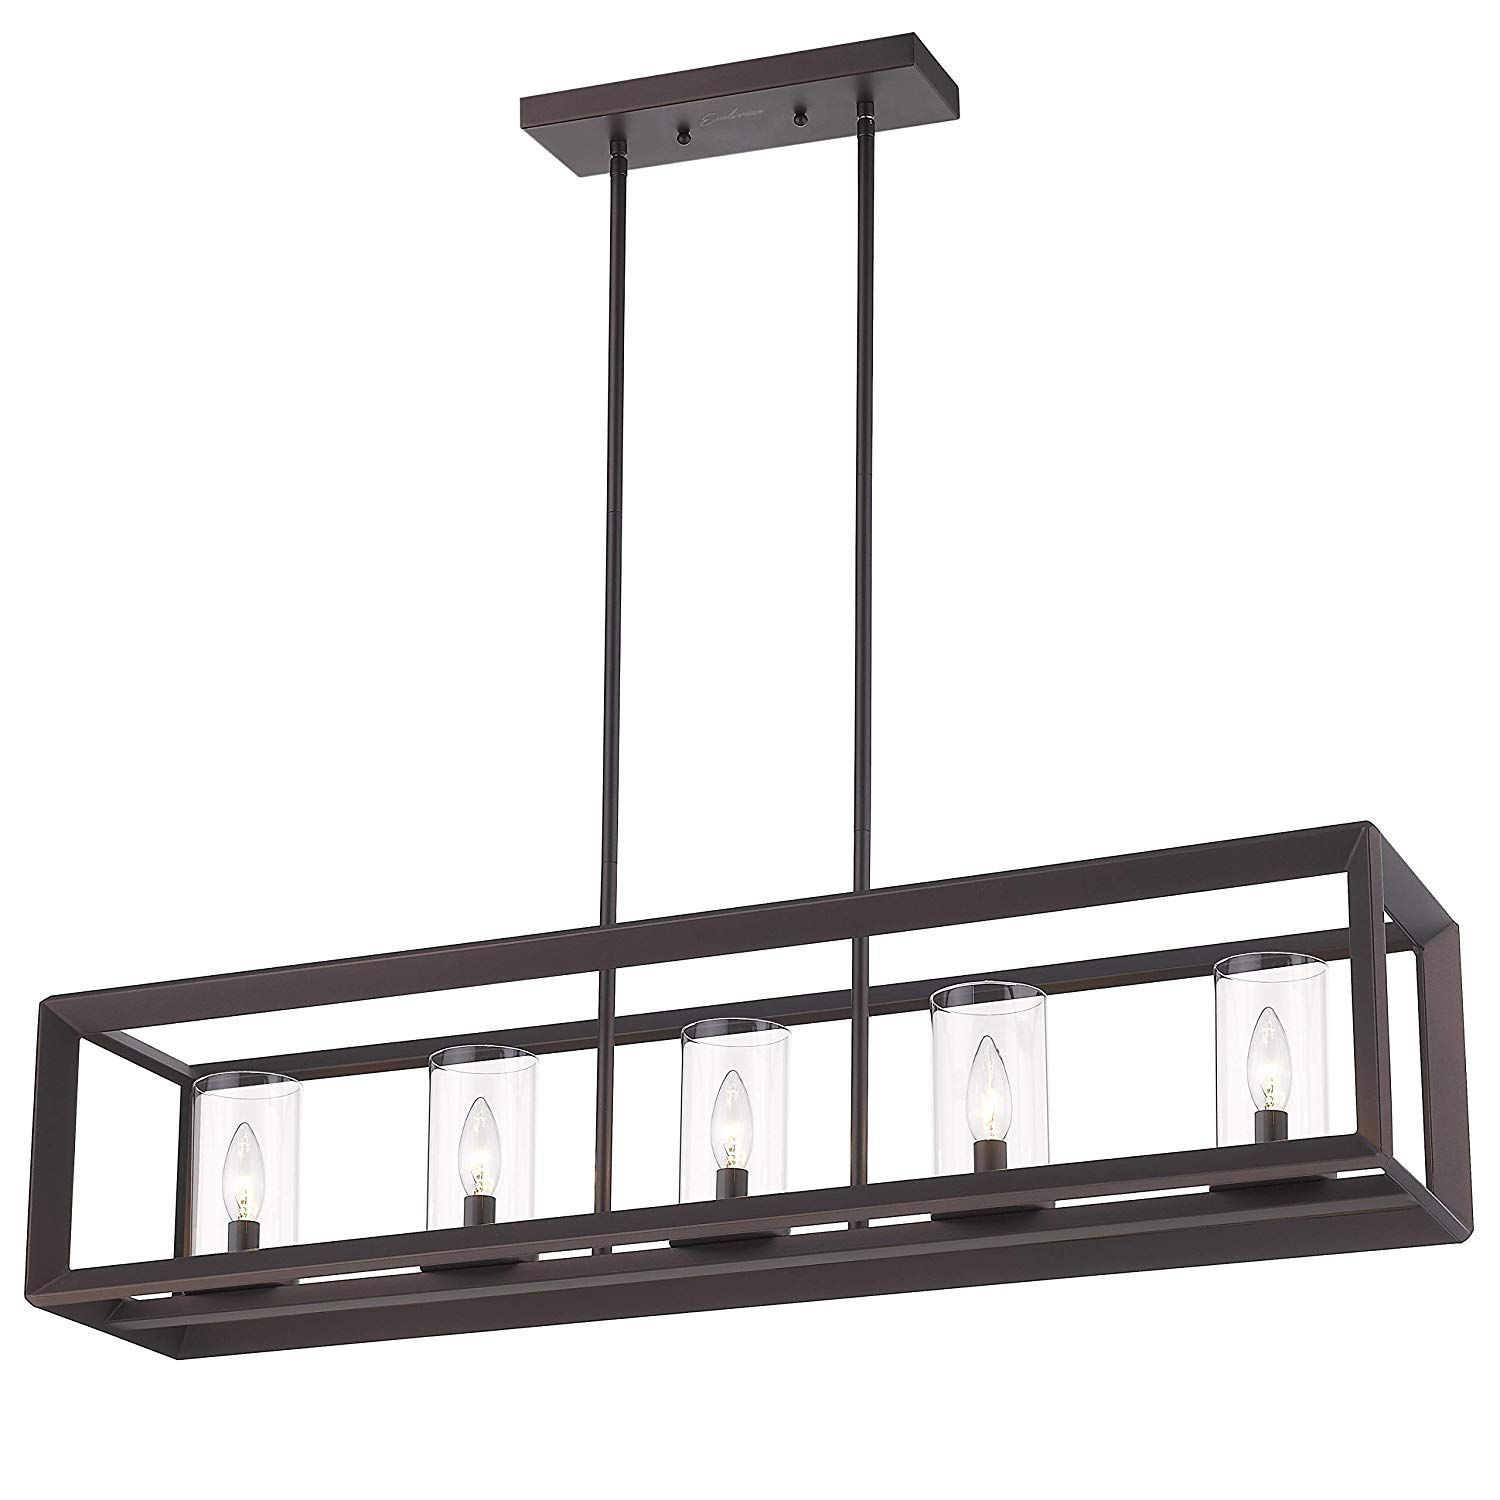 5 light kitchen island lighting modern domestic linear pendant light fixture oil rubbed bronze finish with clear glass shade